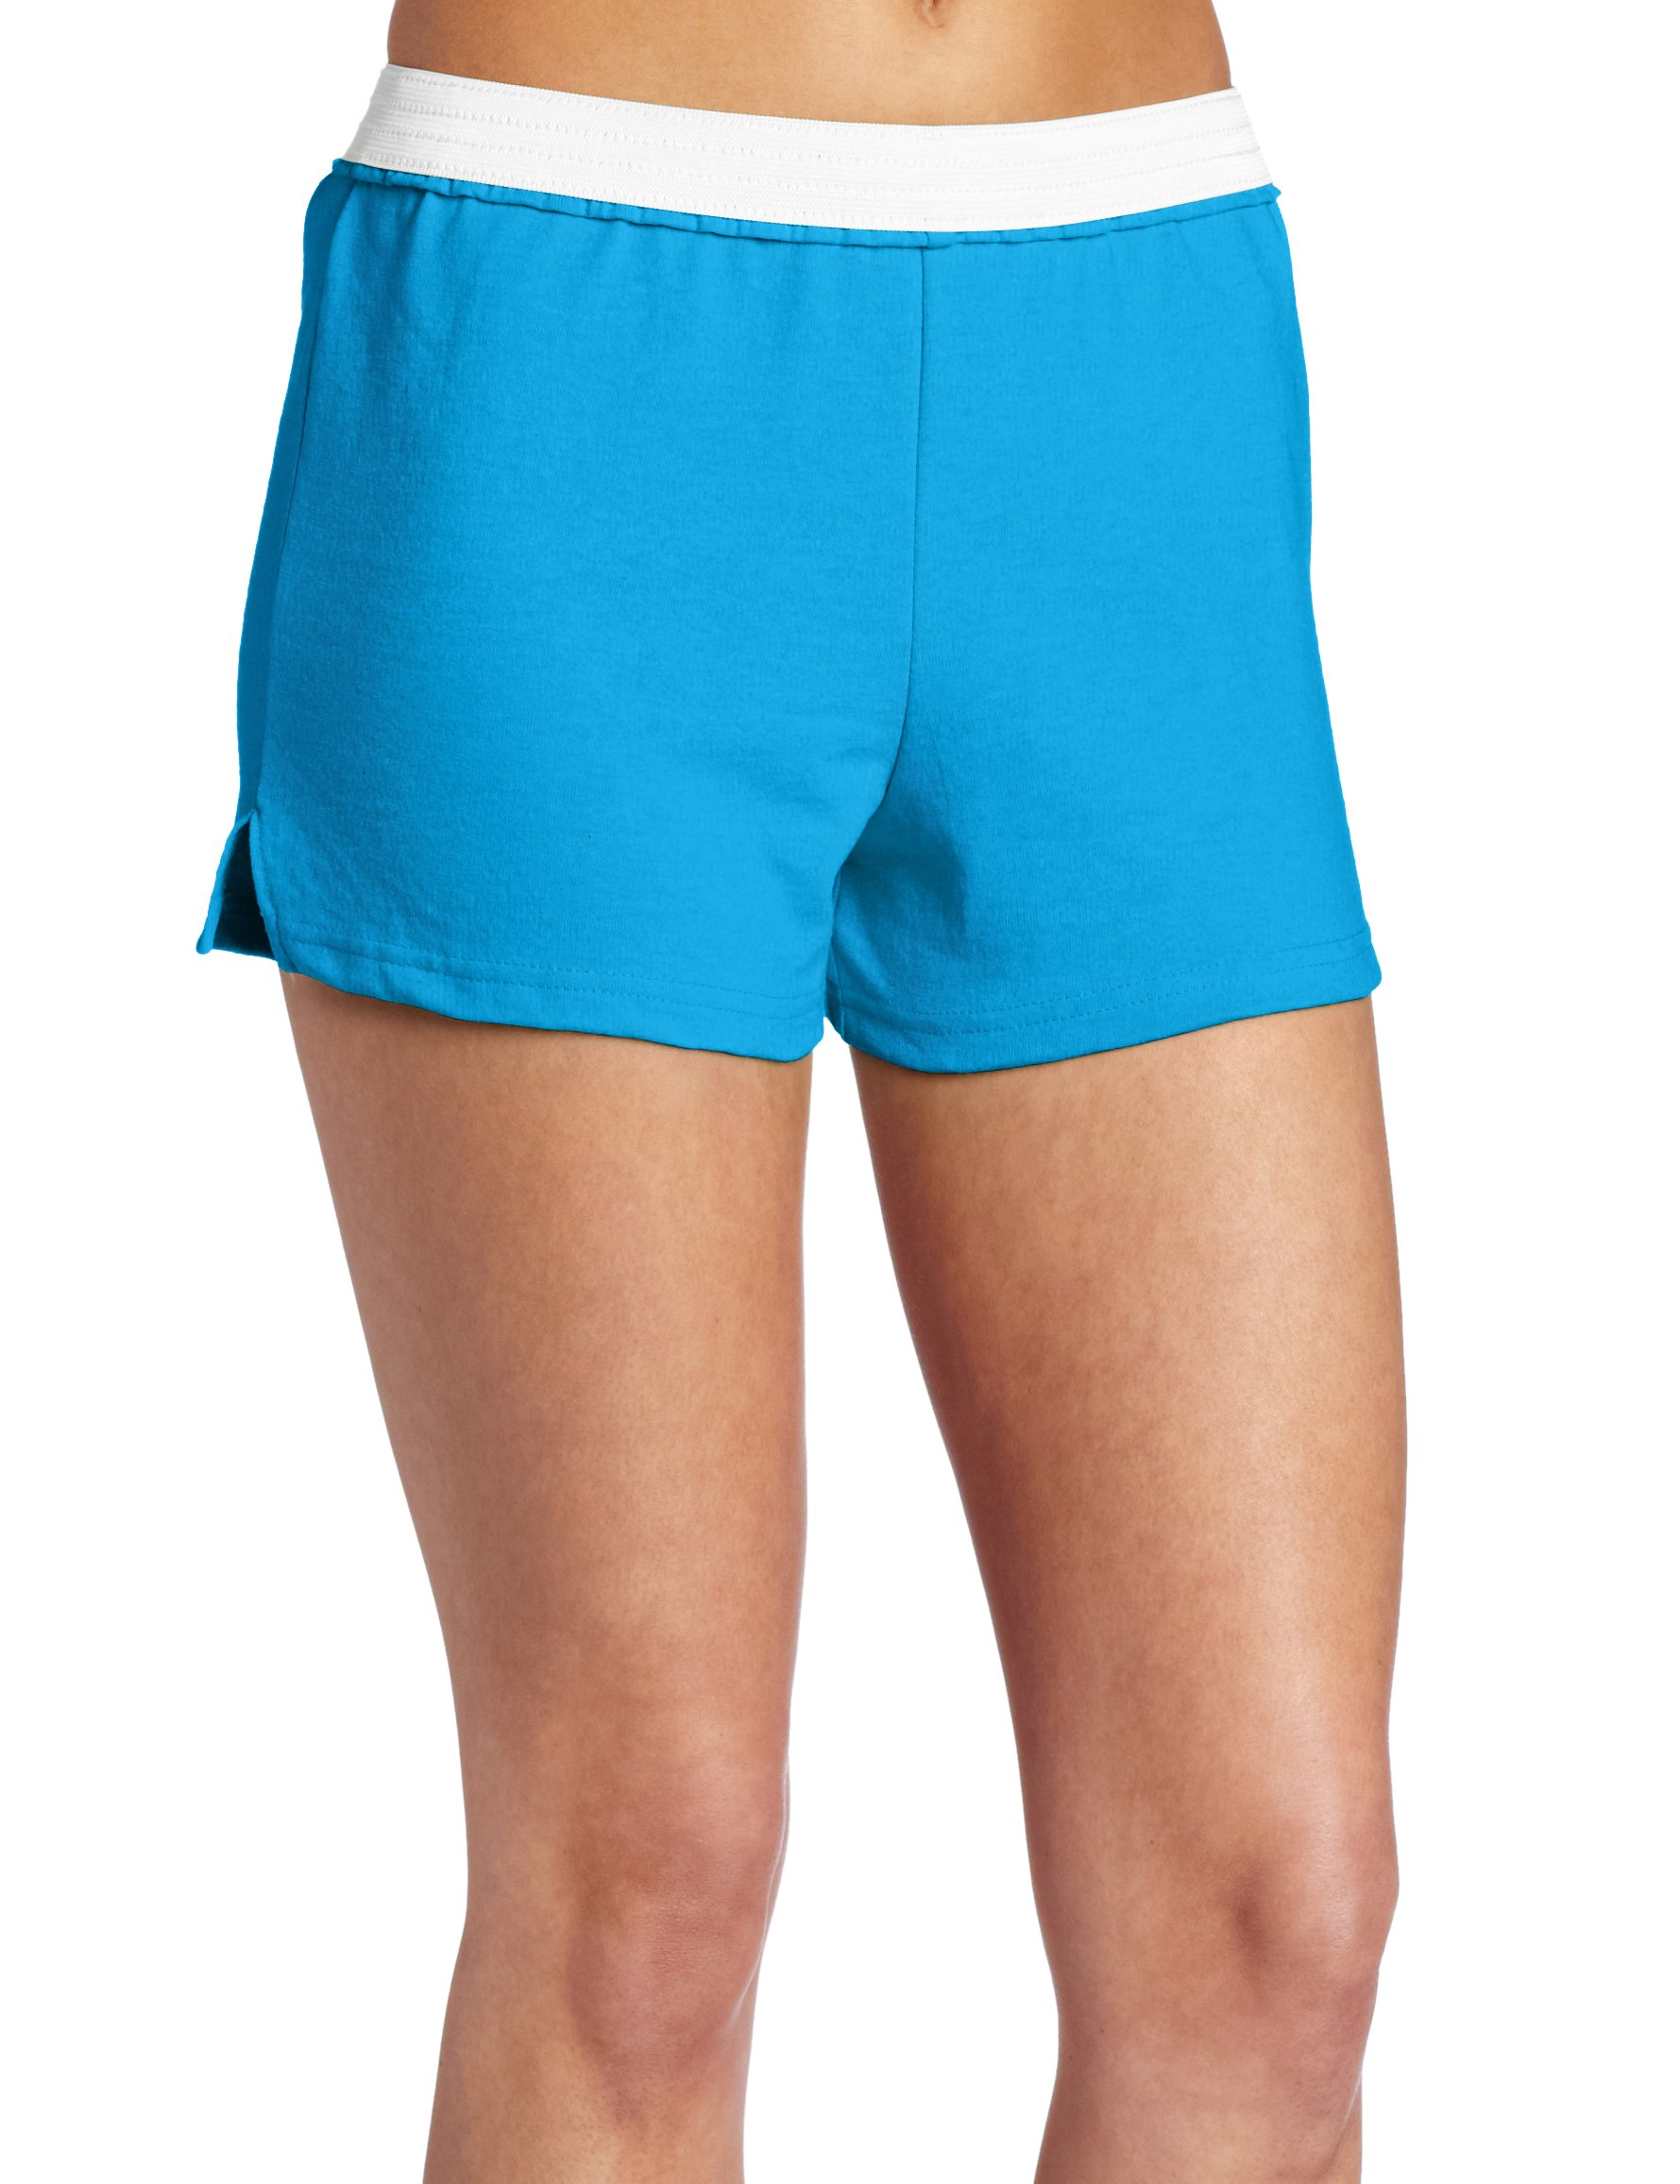 Soffe Juniors Athletic Short, Blue Aster, X-Small